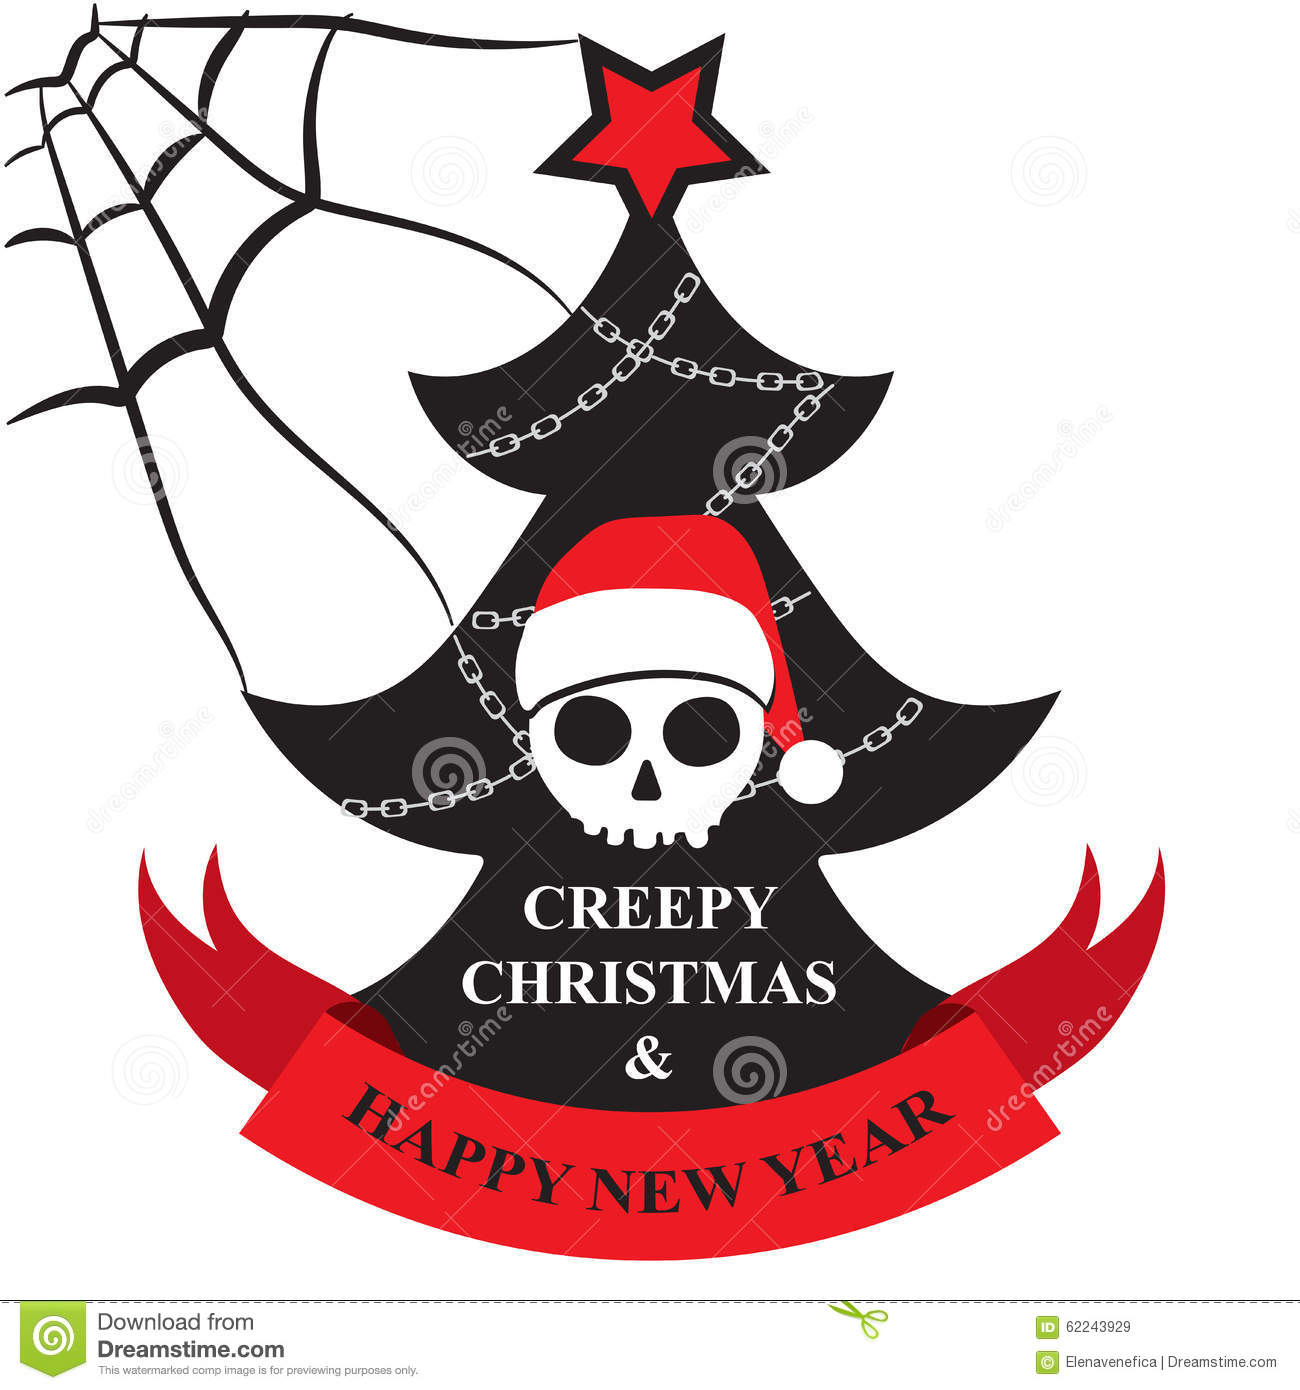 creepy christmas and happy new year greeting card